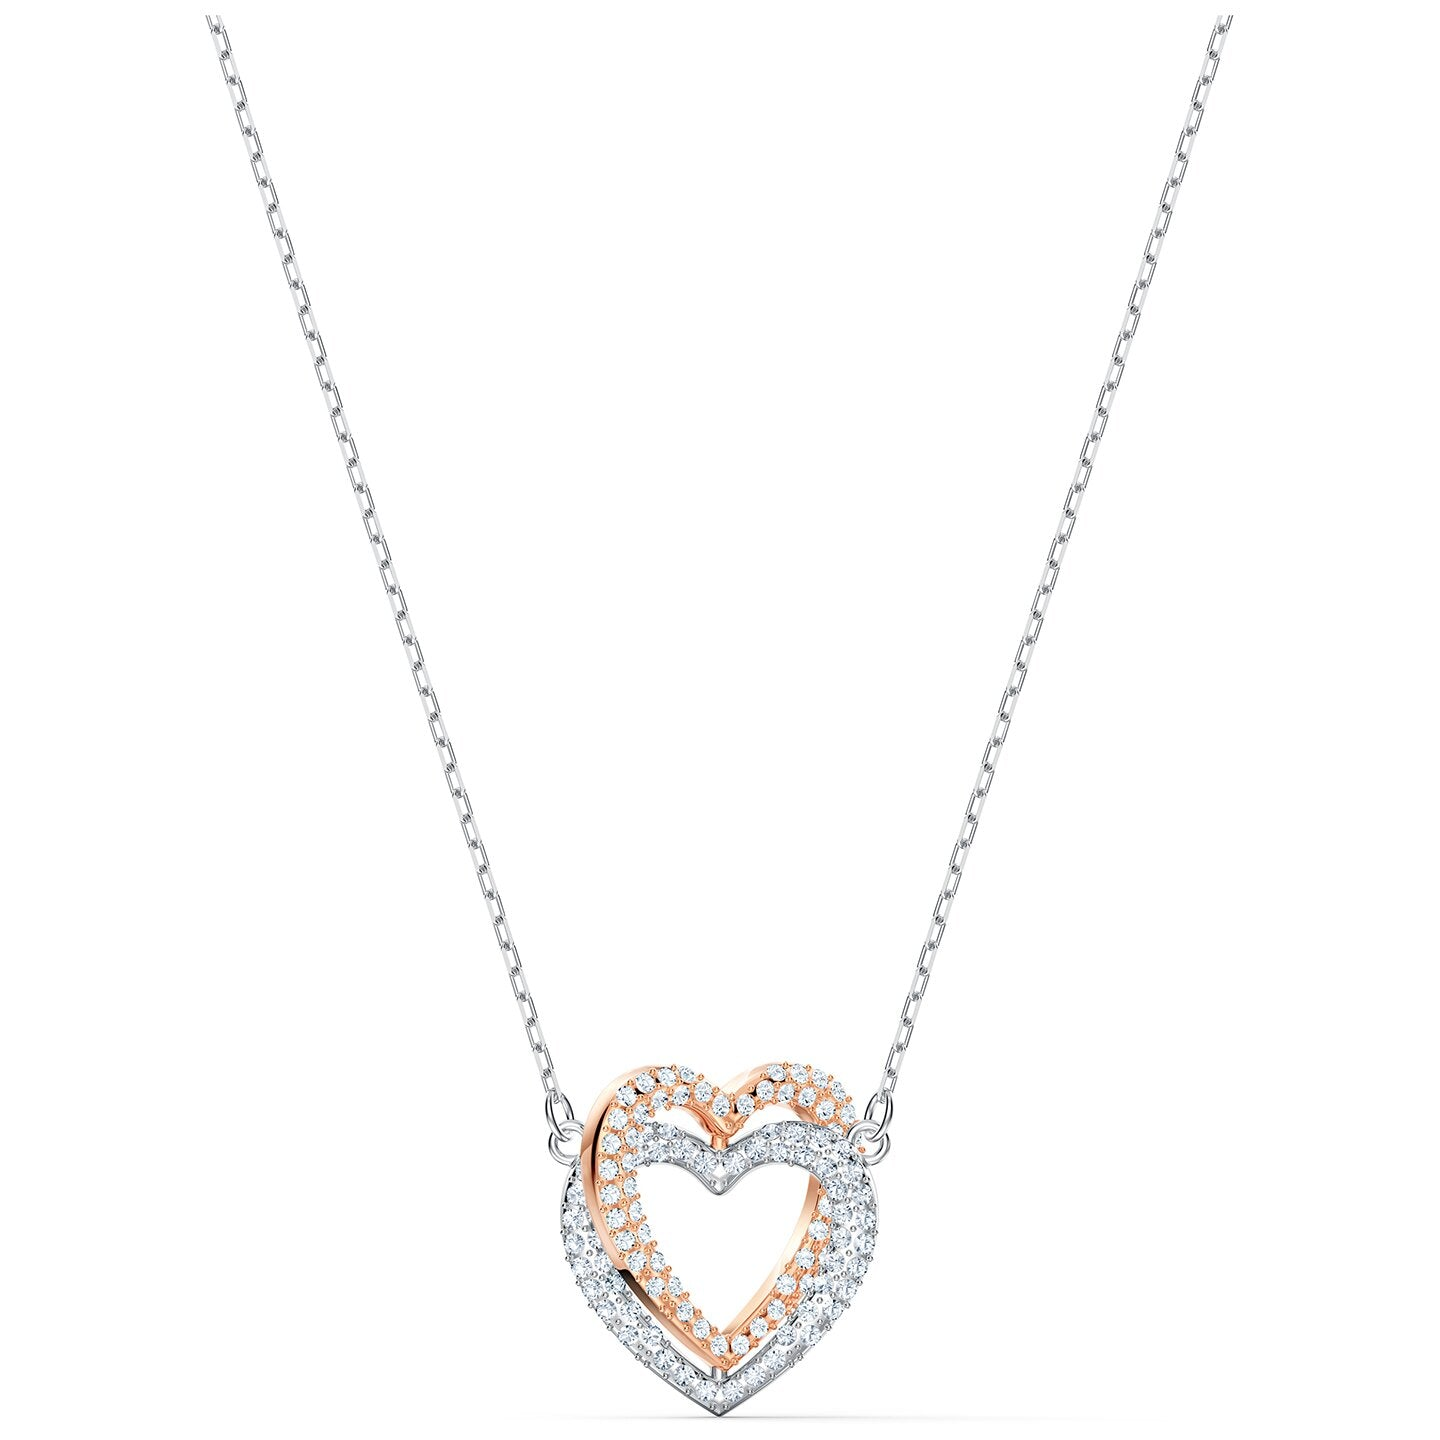 INFINITY DOUBLE HEART NECKLACE, WHITE, MIXED METAL FINISH